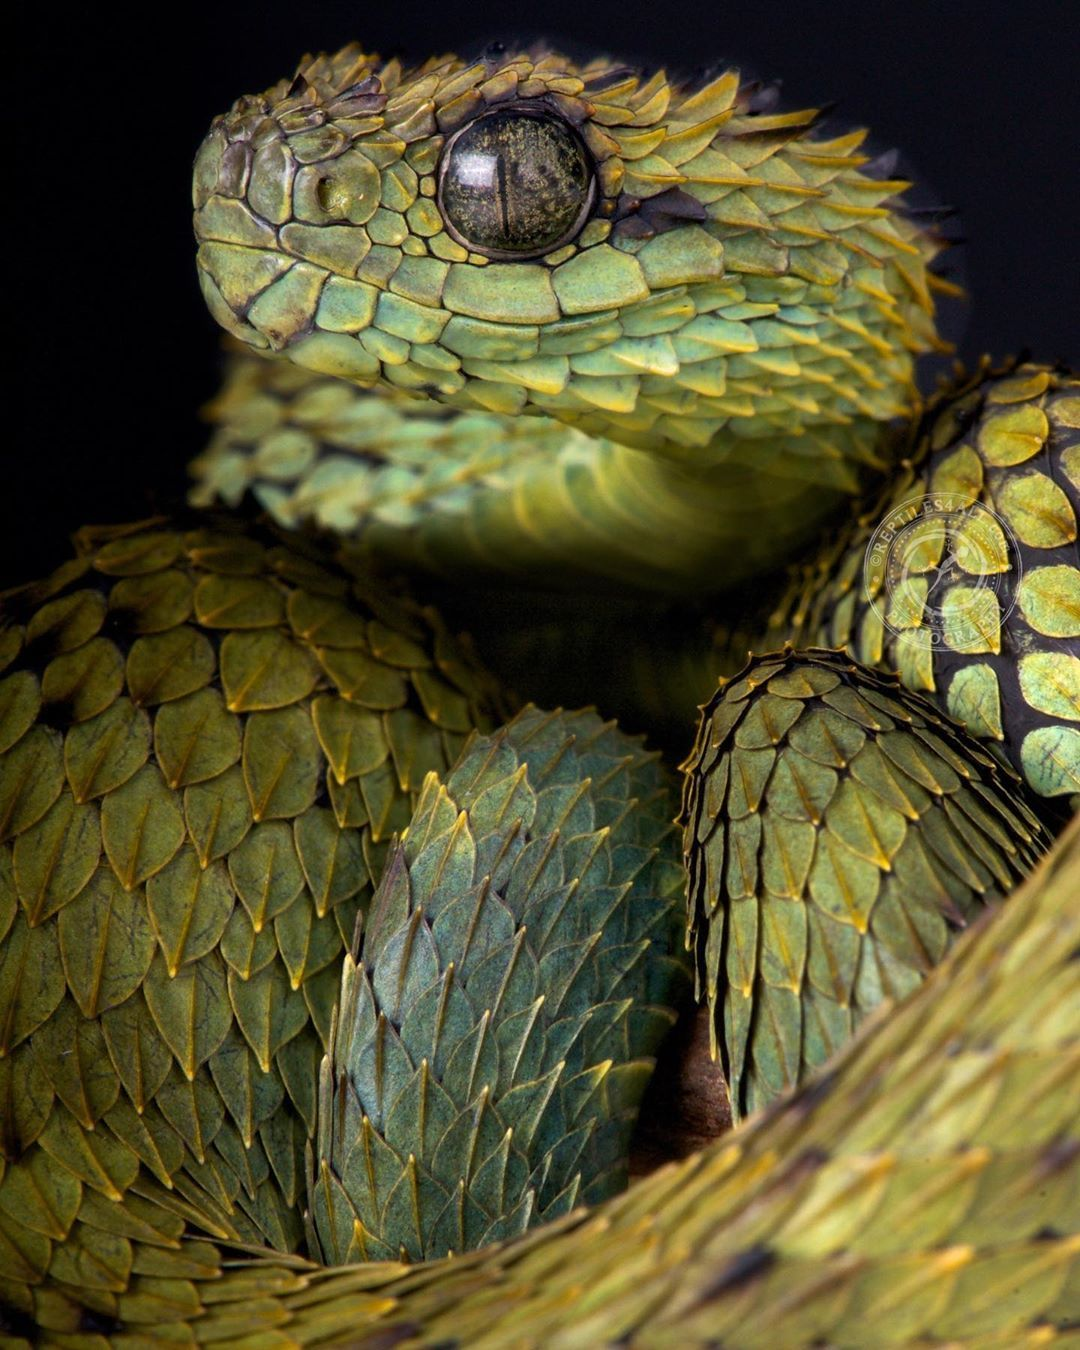 Spiny Bush Viper Pet Snake Reptiles Cute Reptiles